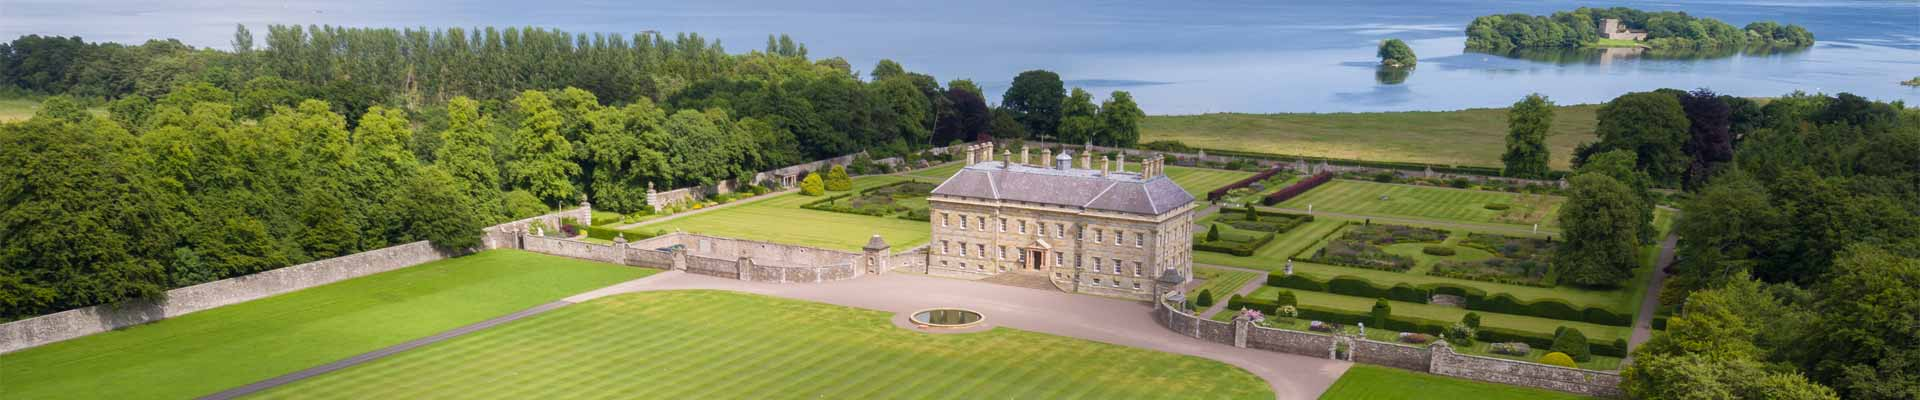 Photo of the stunning Kinross House